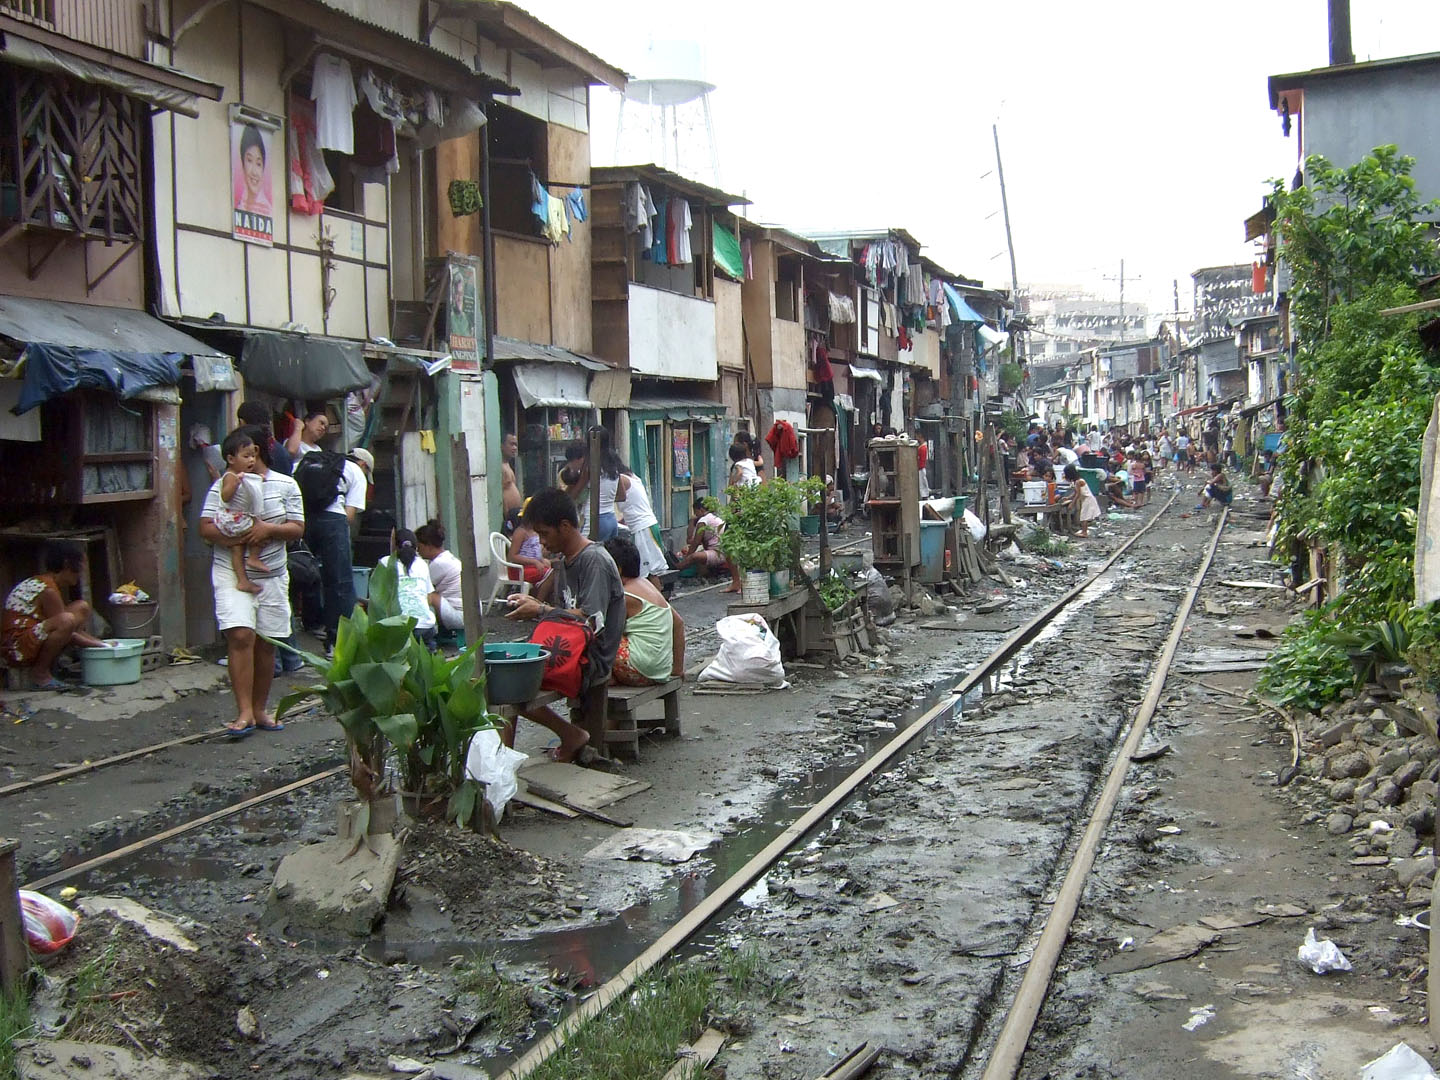 image of PNR lines, along Sta. Mesa area, before said lines were cleaned up